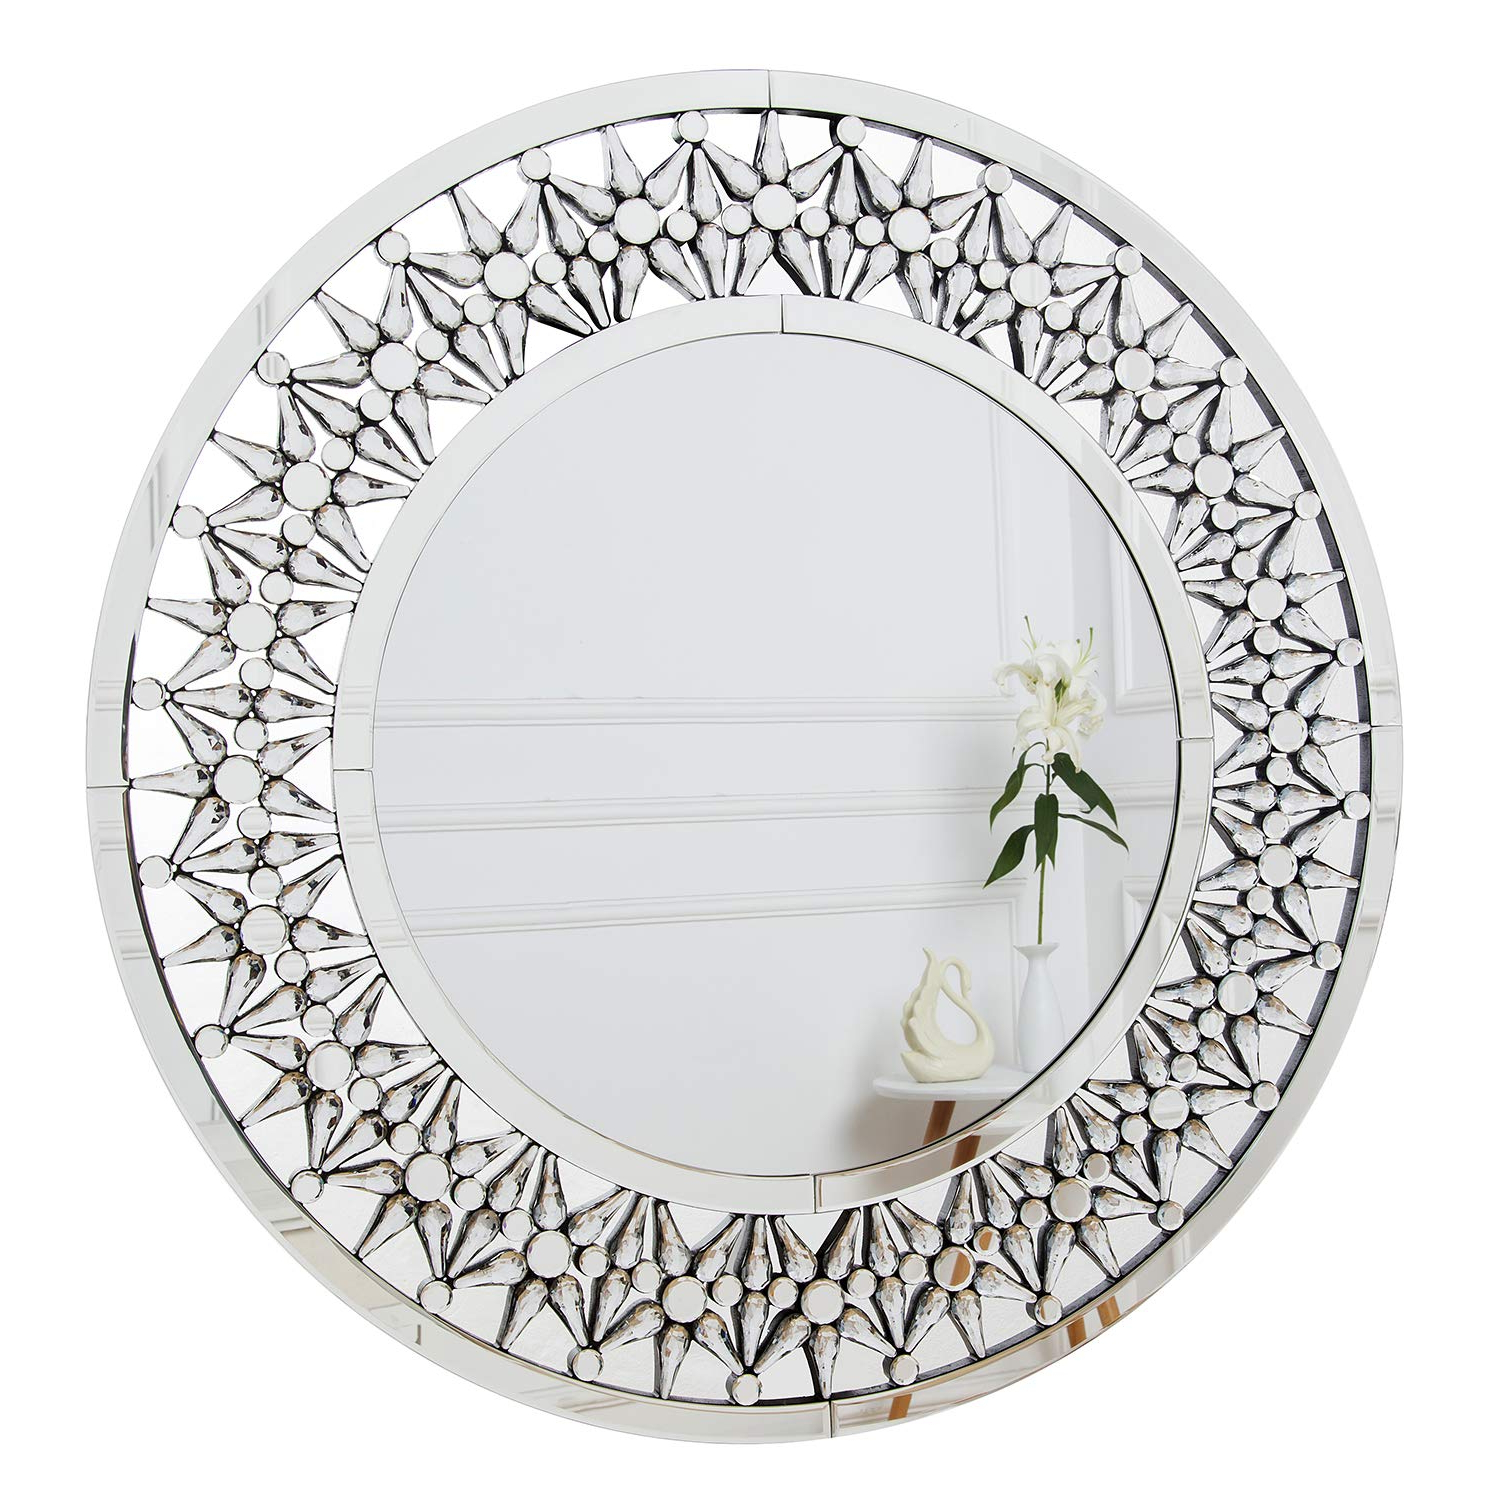 Widely Used Richtop Wall Mirror Large Starburst Crystal Mosaic Frame Round Wall Mounted Mirrors For Living Room, Bedroom, Hallway, Kitchen 90cm X 90cm With Regard To Big Round Wall Mirrors (View 12 of 20)